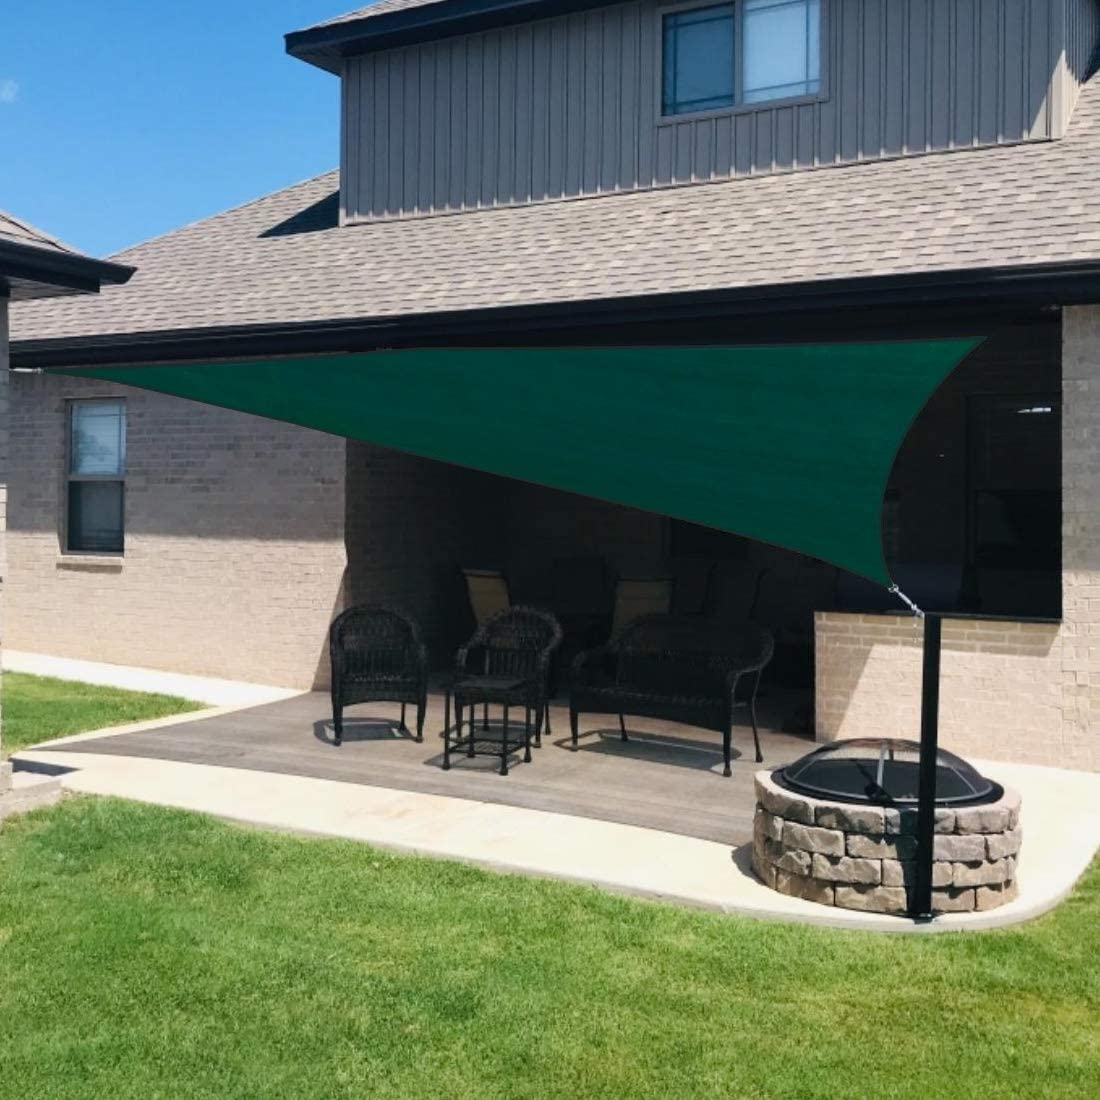 Quictent 26 X 20 ft 185G HDPE Rectangle Sun Shade Sail Canopy 98 UV Block Outdoor Patio Garden with Hardware Kit Green